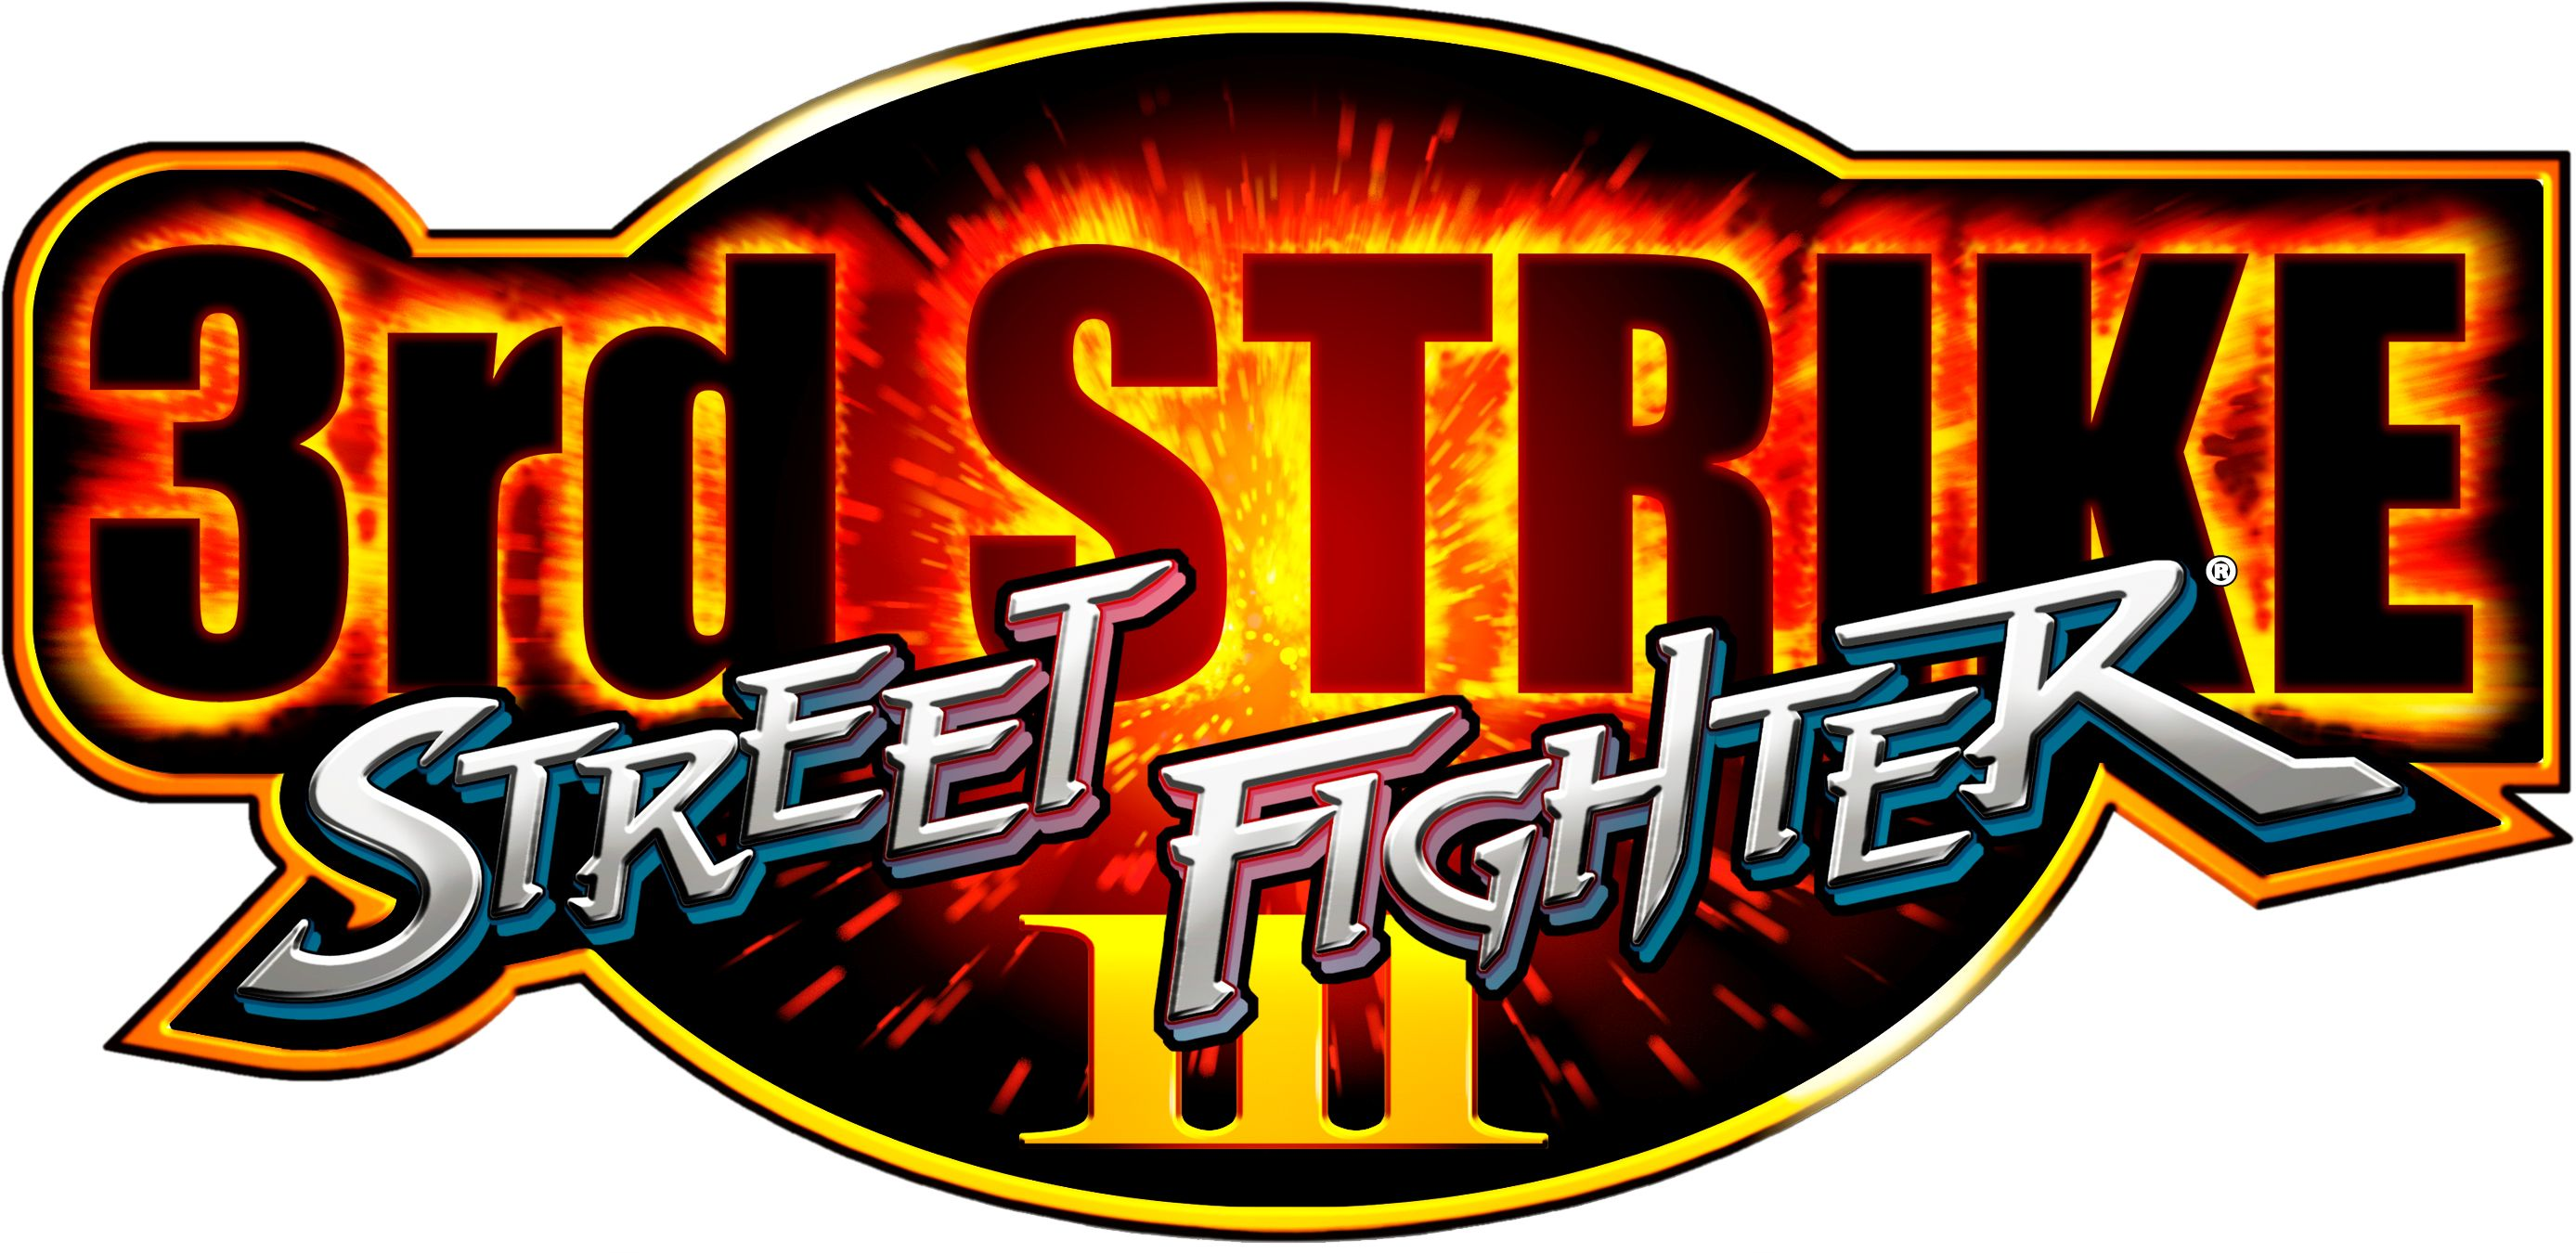 Street Fighter 3rd Strike Logo